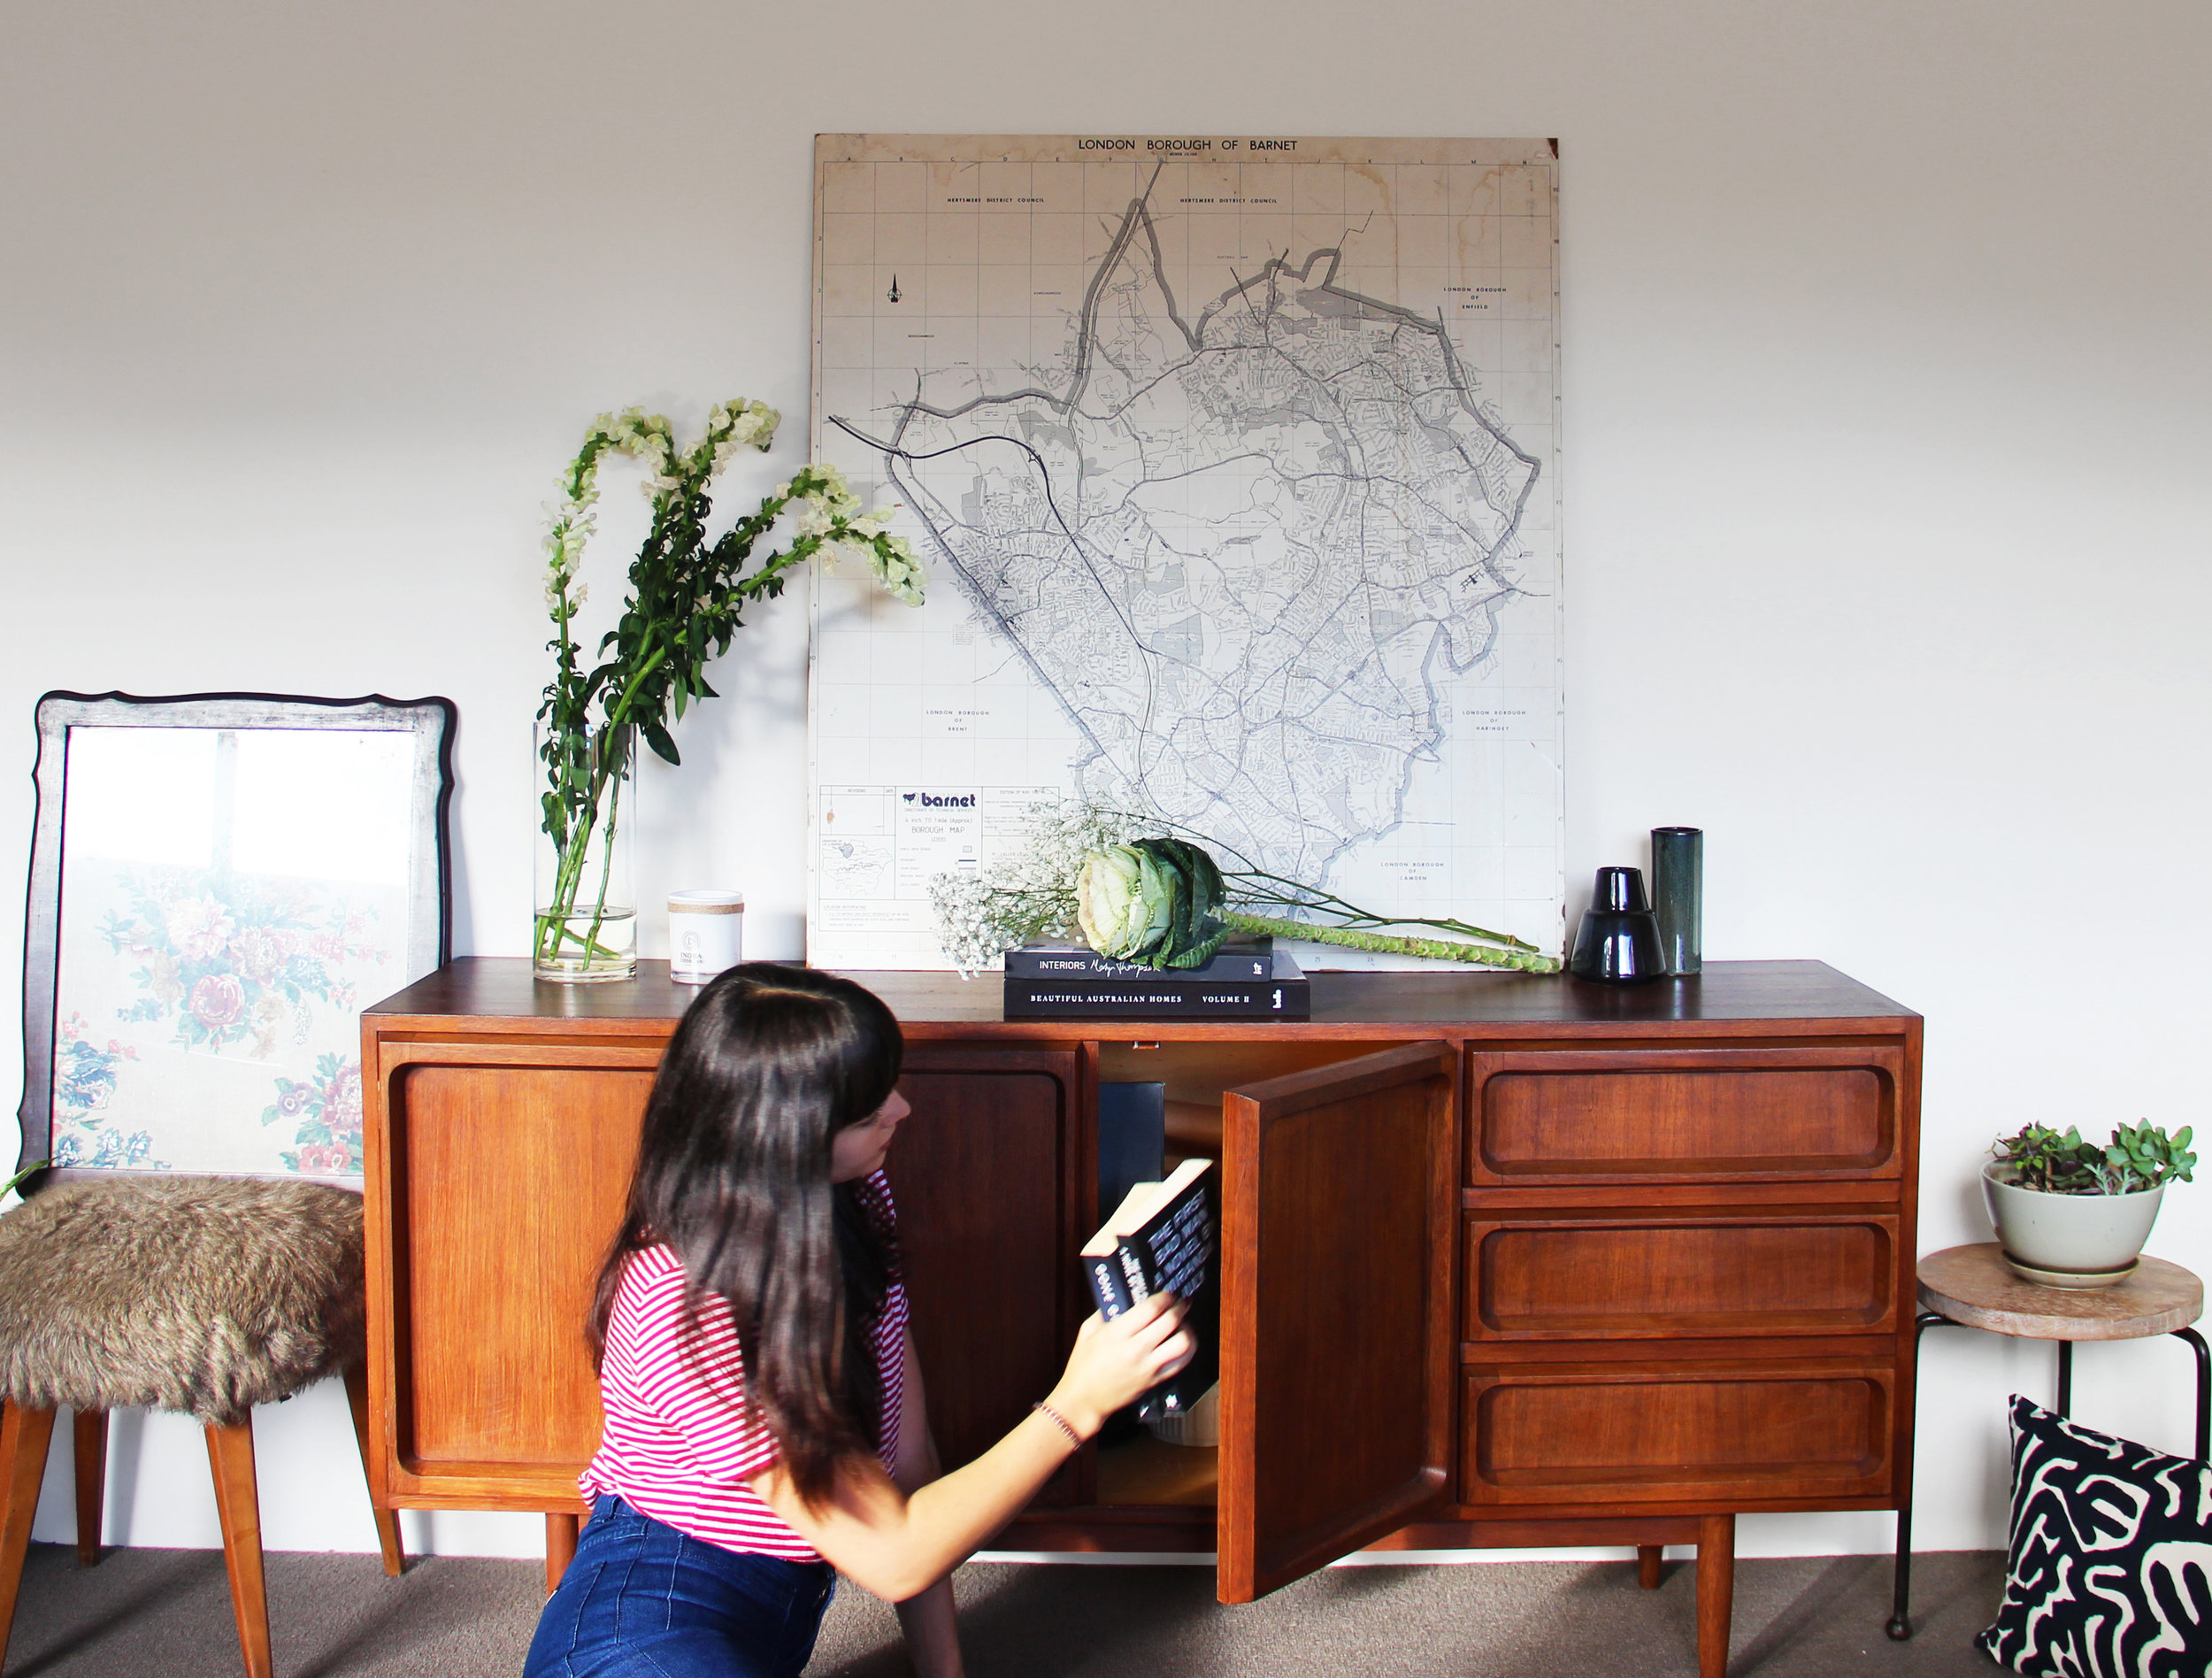 With a little bit of side table shuffling, the buffet fits perfectly along the notoriously empty wall.